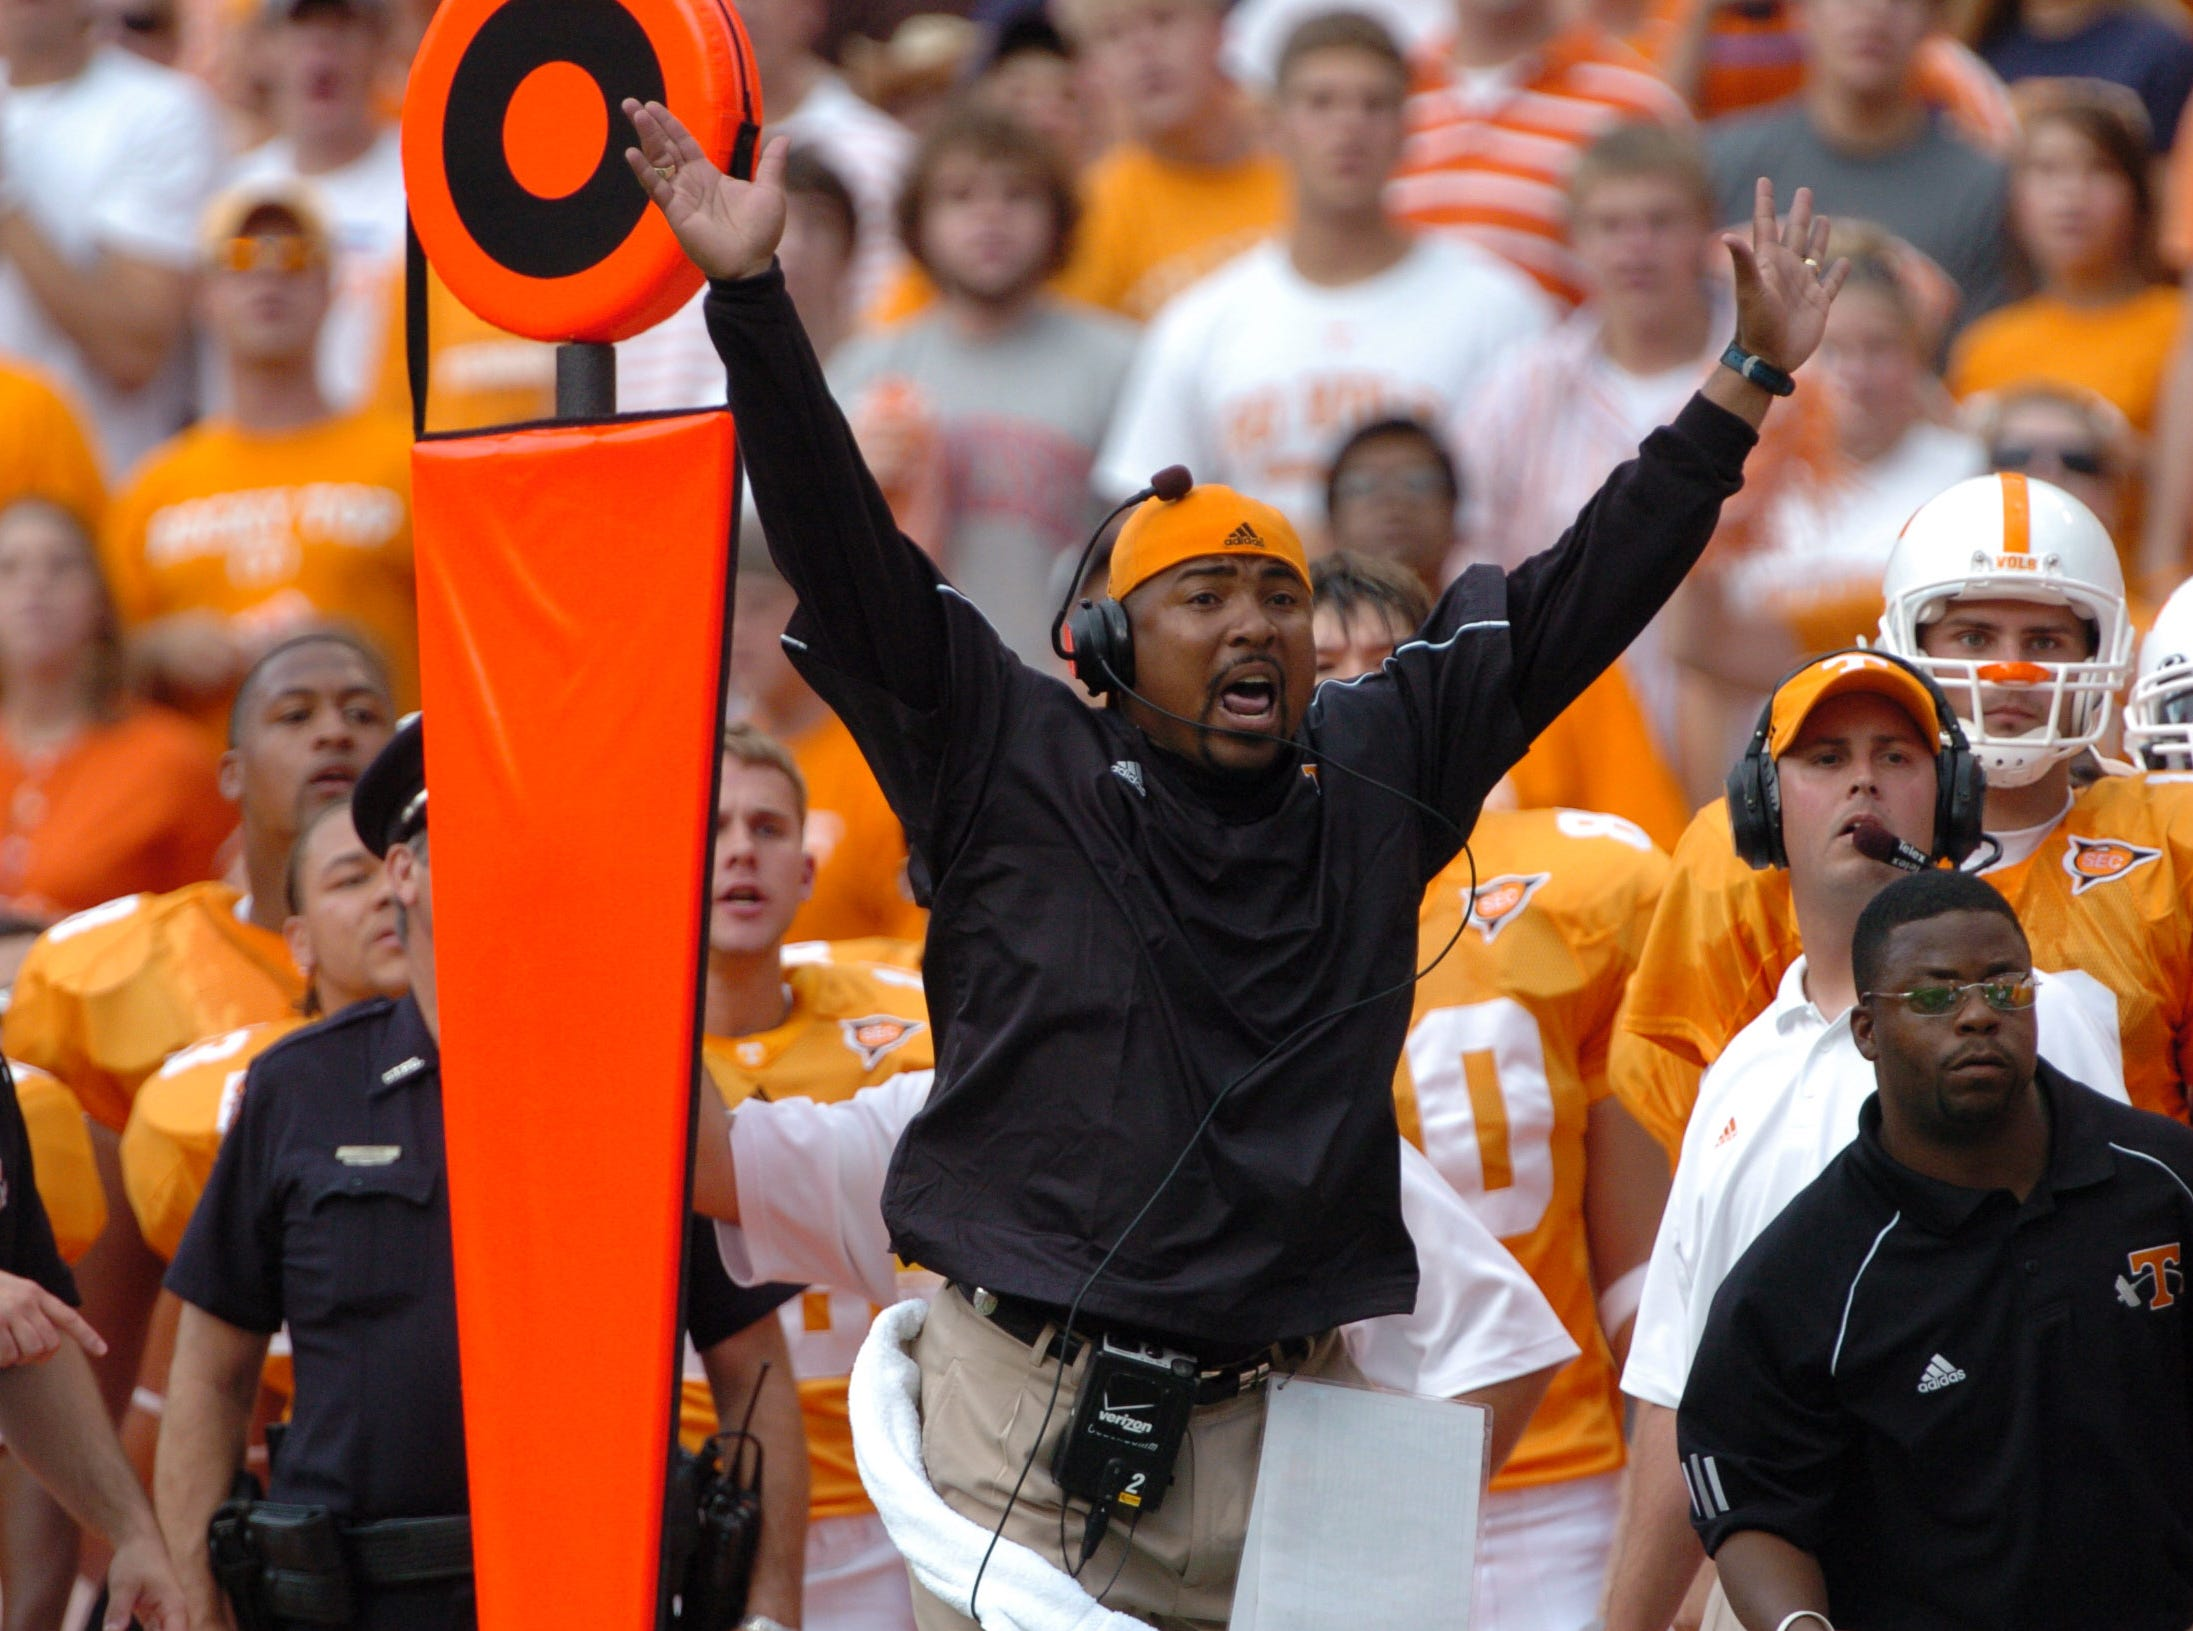 0902utcal.JA#6271.JPG-- Tennessee coach Trooper Taylor celebrates after a touchdown against California during the game on Saturday at Neyland Stadium.